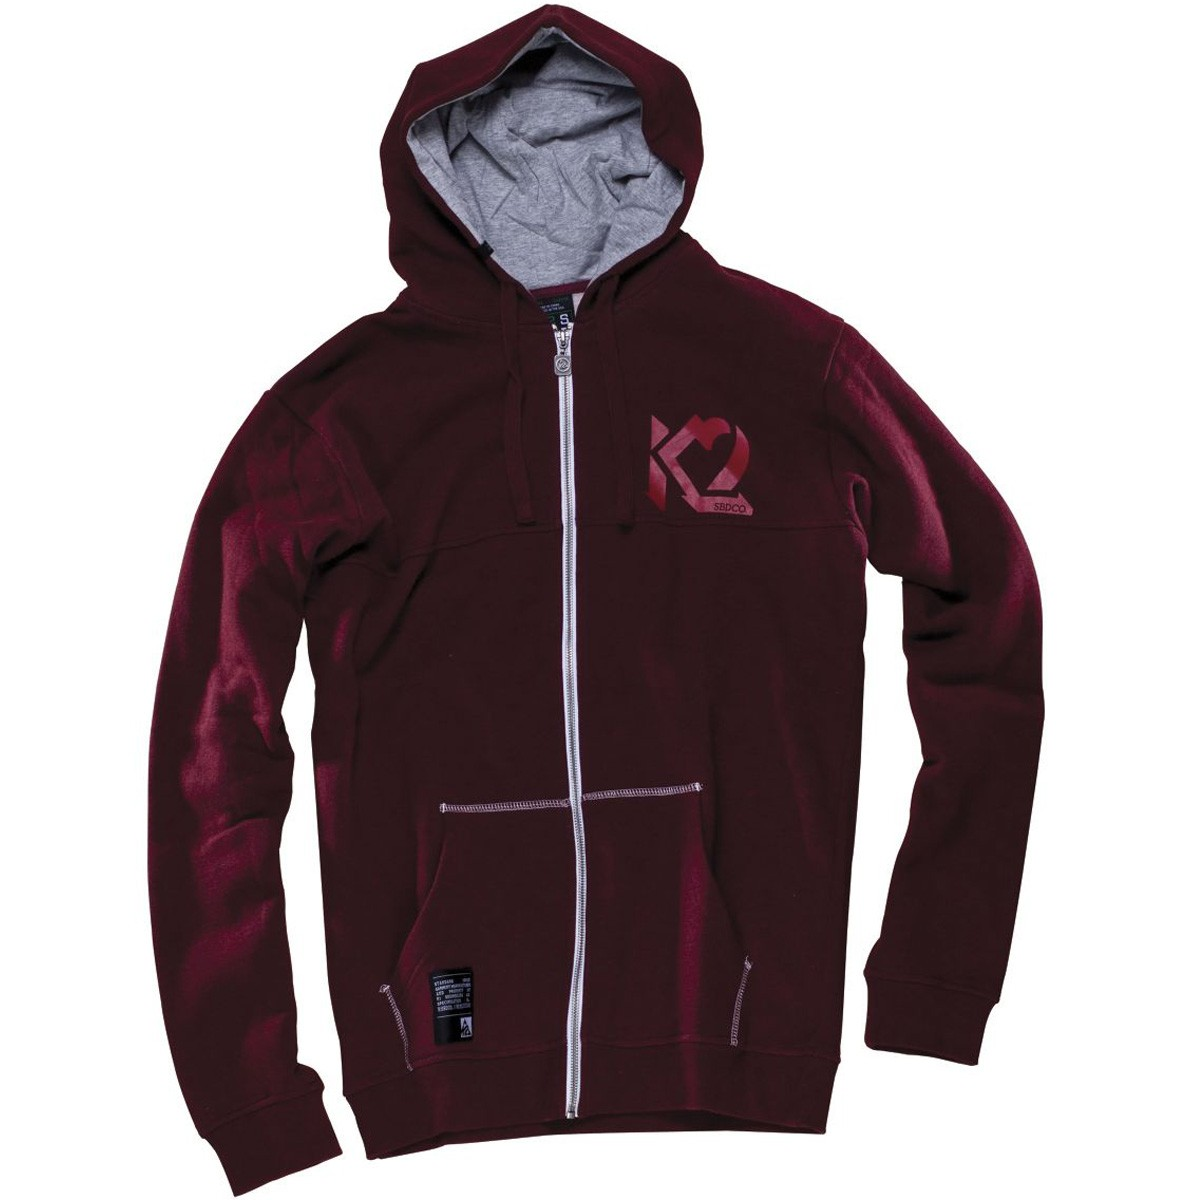 K2 Howl Full Zip Hoodie - Maroon Heather